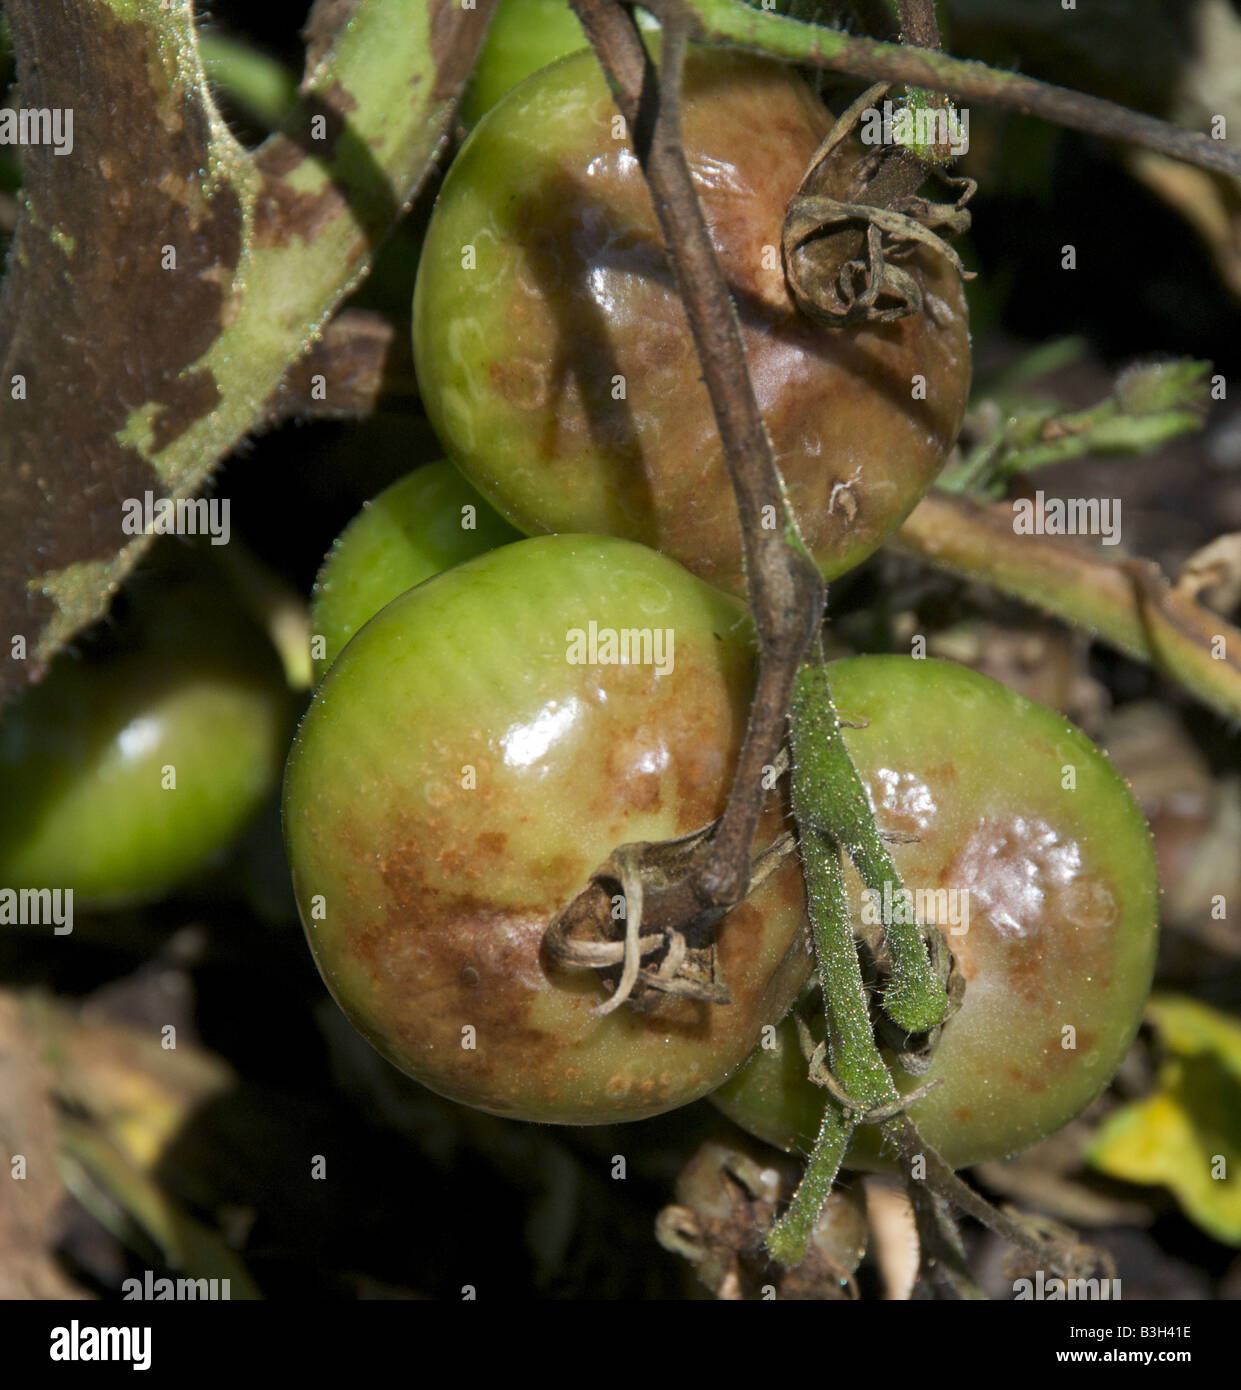 Disease of tomatoes. How to deal with phytophthora on tomatoes